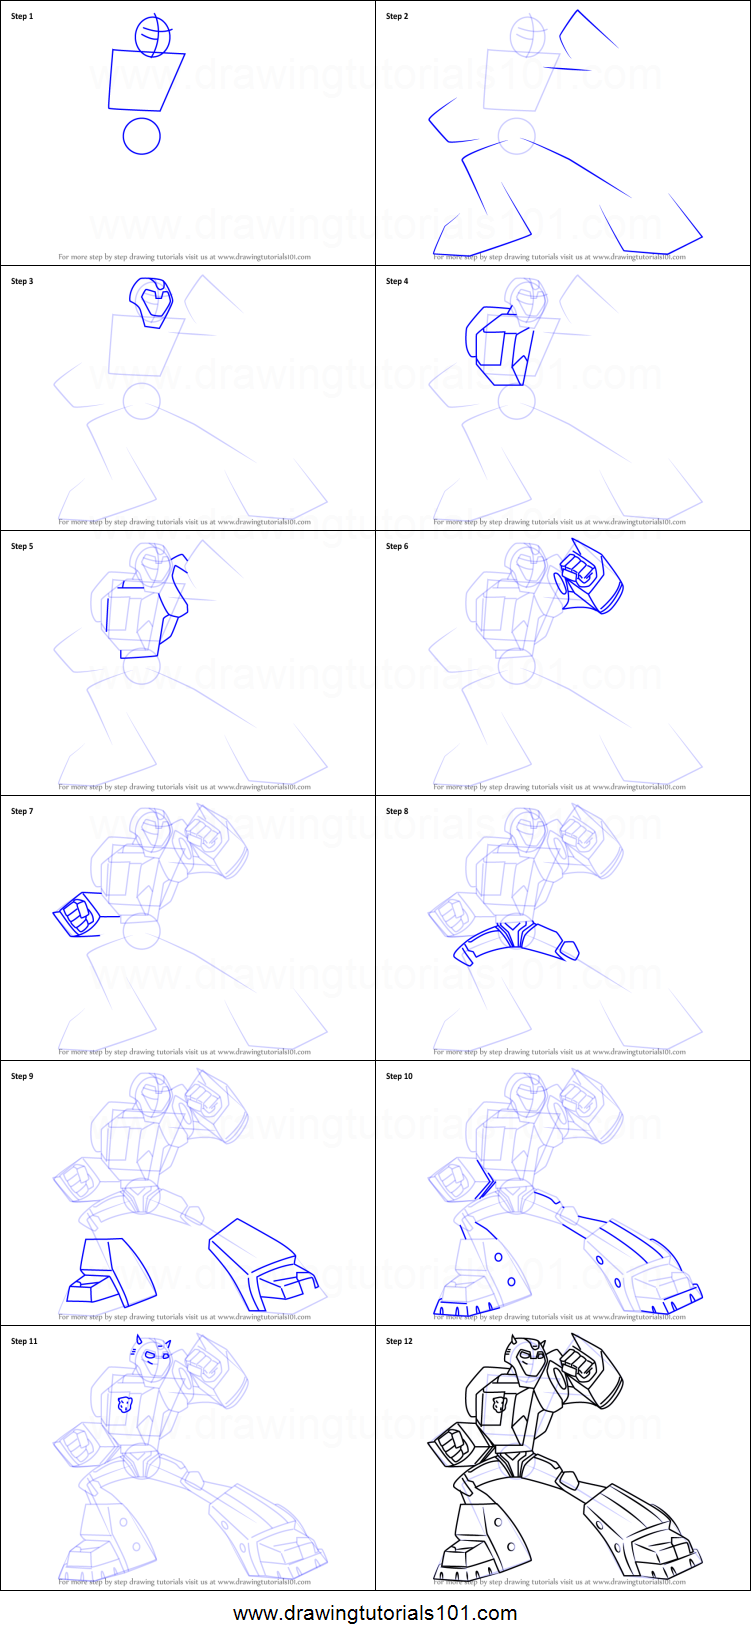 How To Draw Bumblebee From Transformers Home Drawing Tutorials